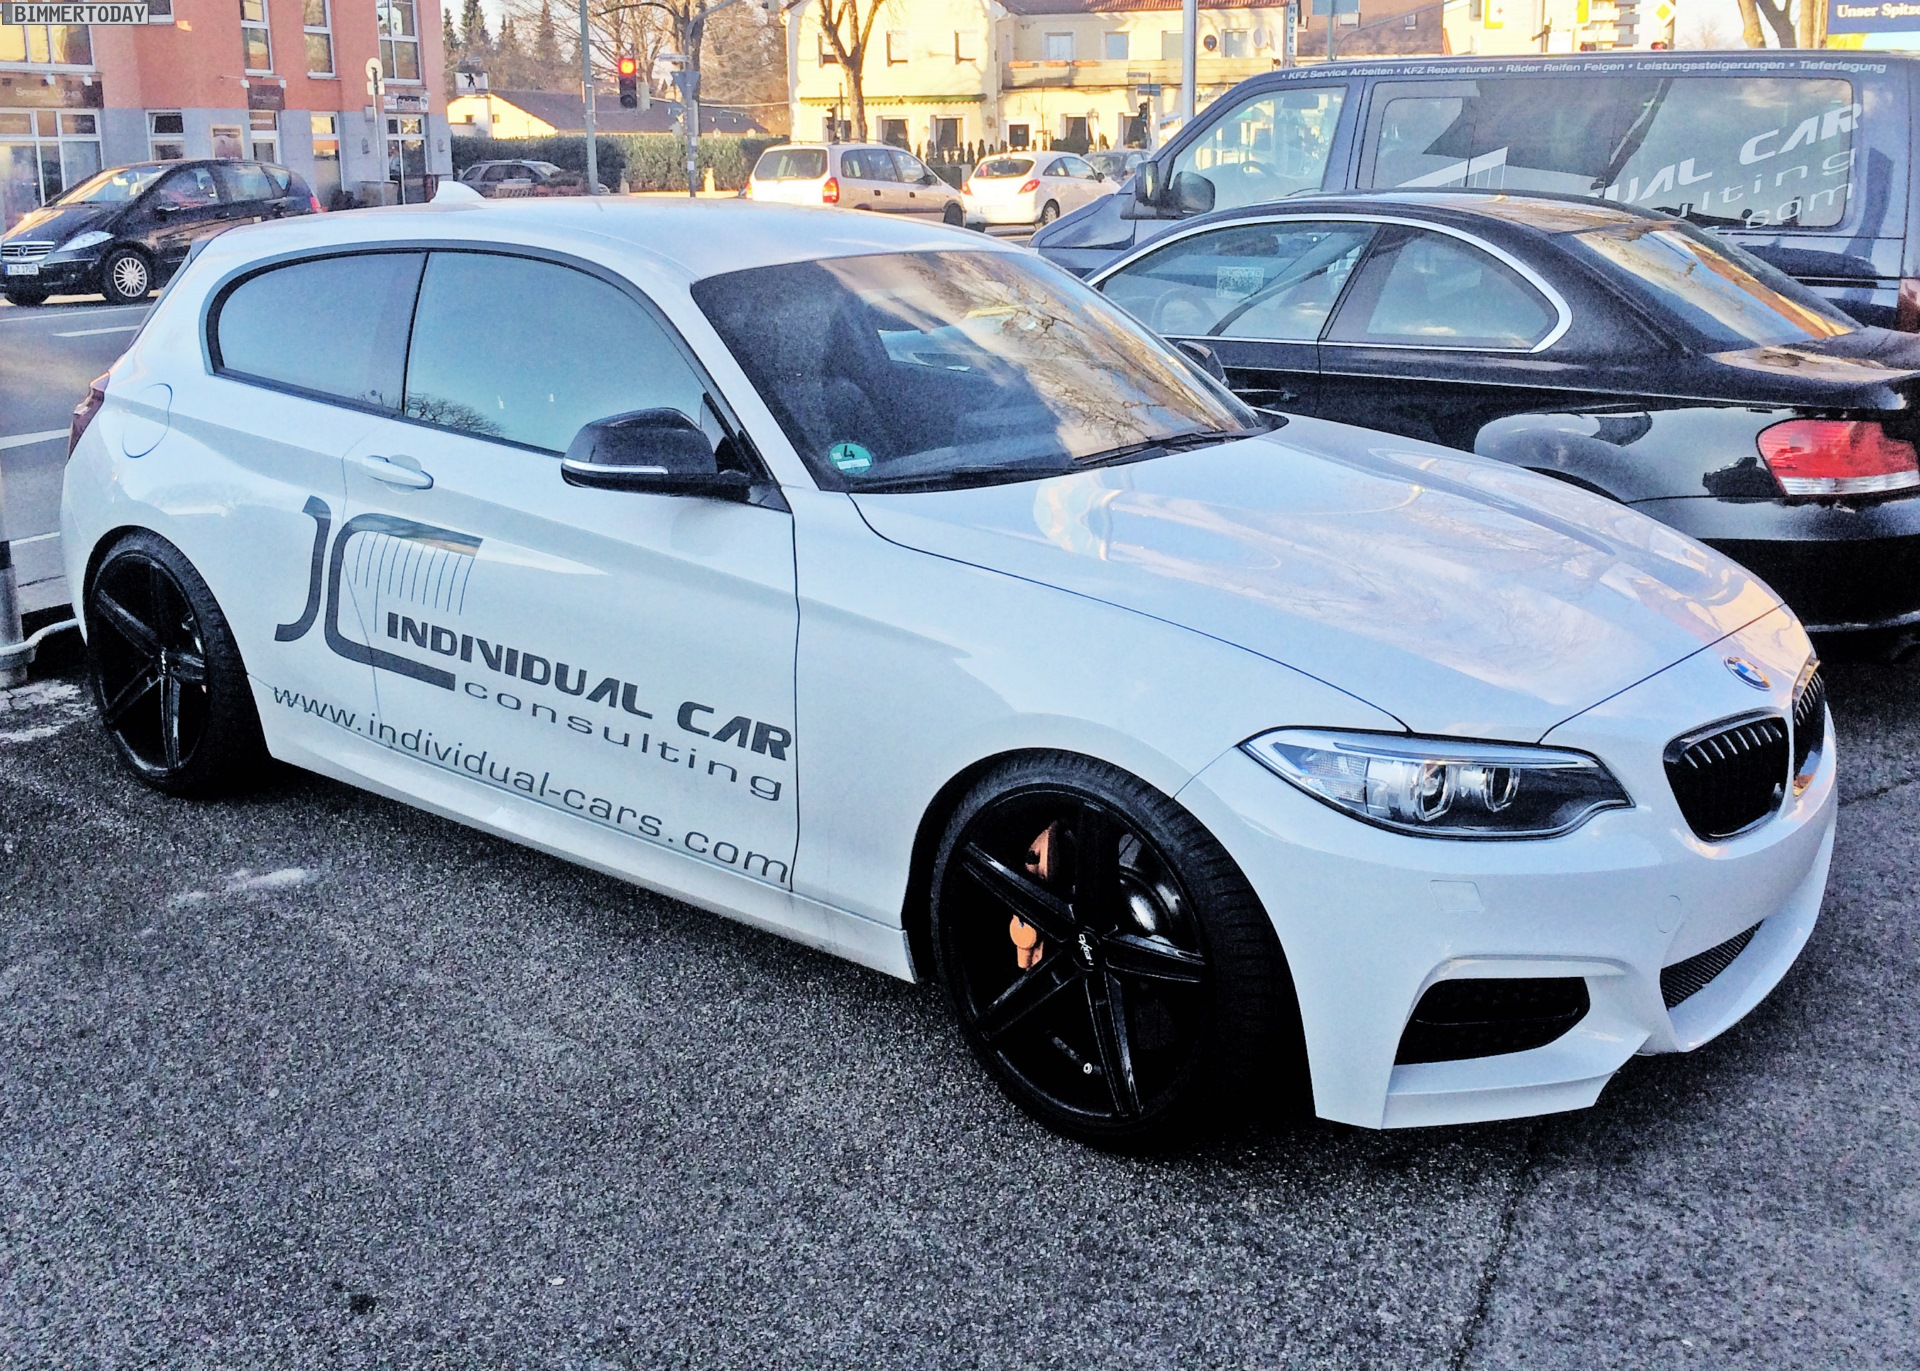 2015 - [BMW] Série 1 restylée [F20/21] - Page 6 BMW-1er-F20-F21-Front-Umbau-2er-F22-Design-Tuning-Individual-Car-Consulting-02